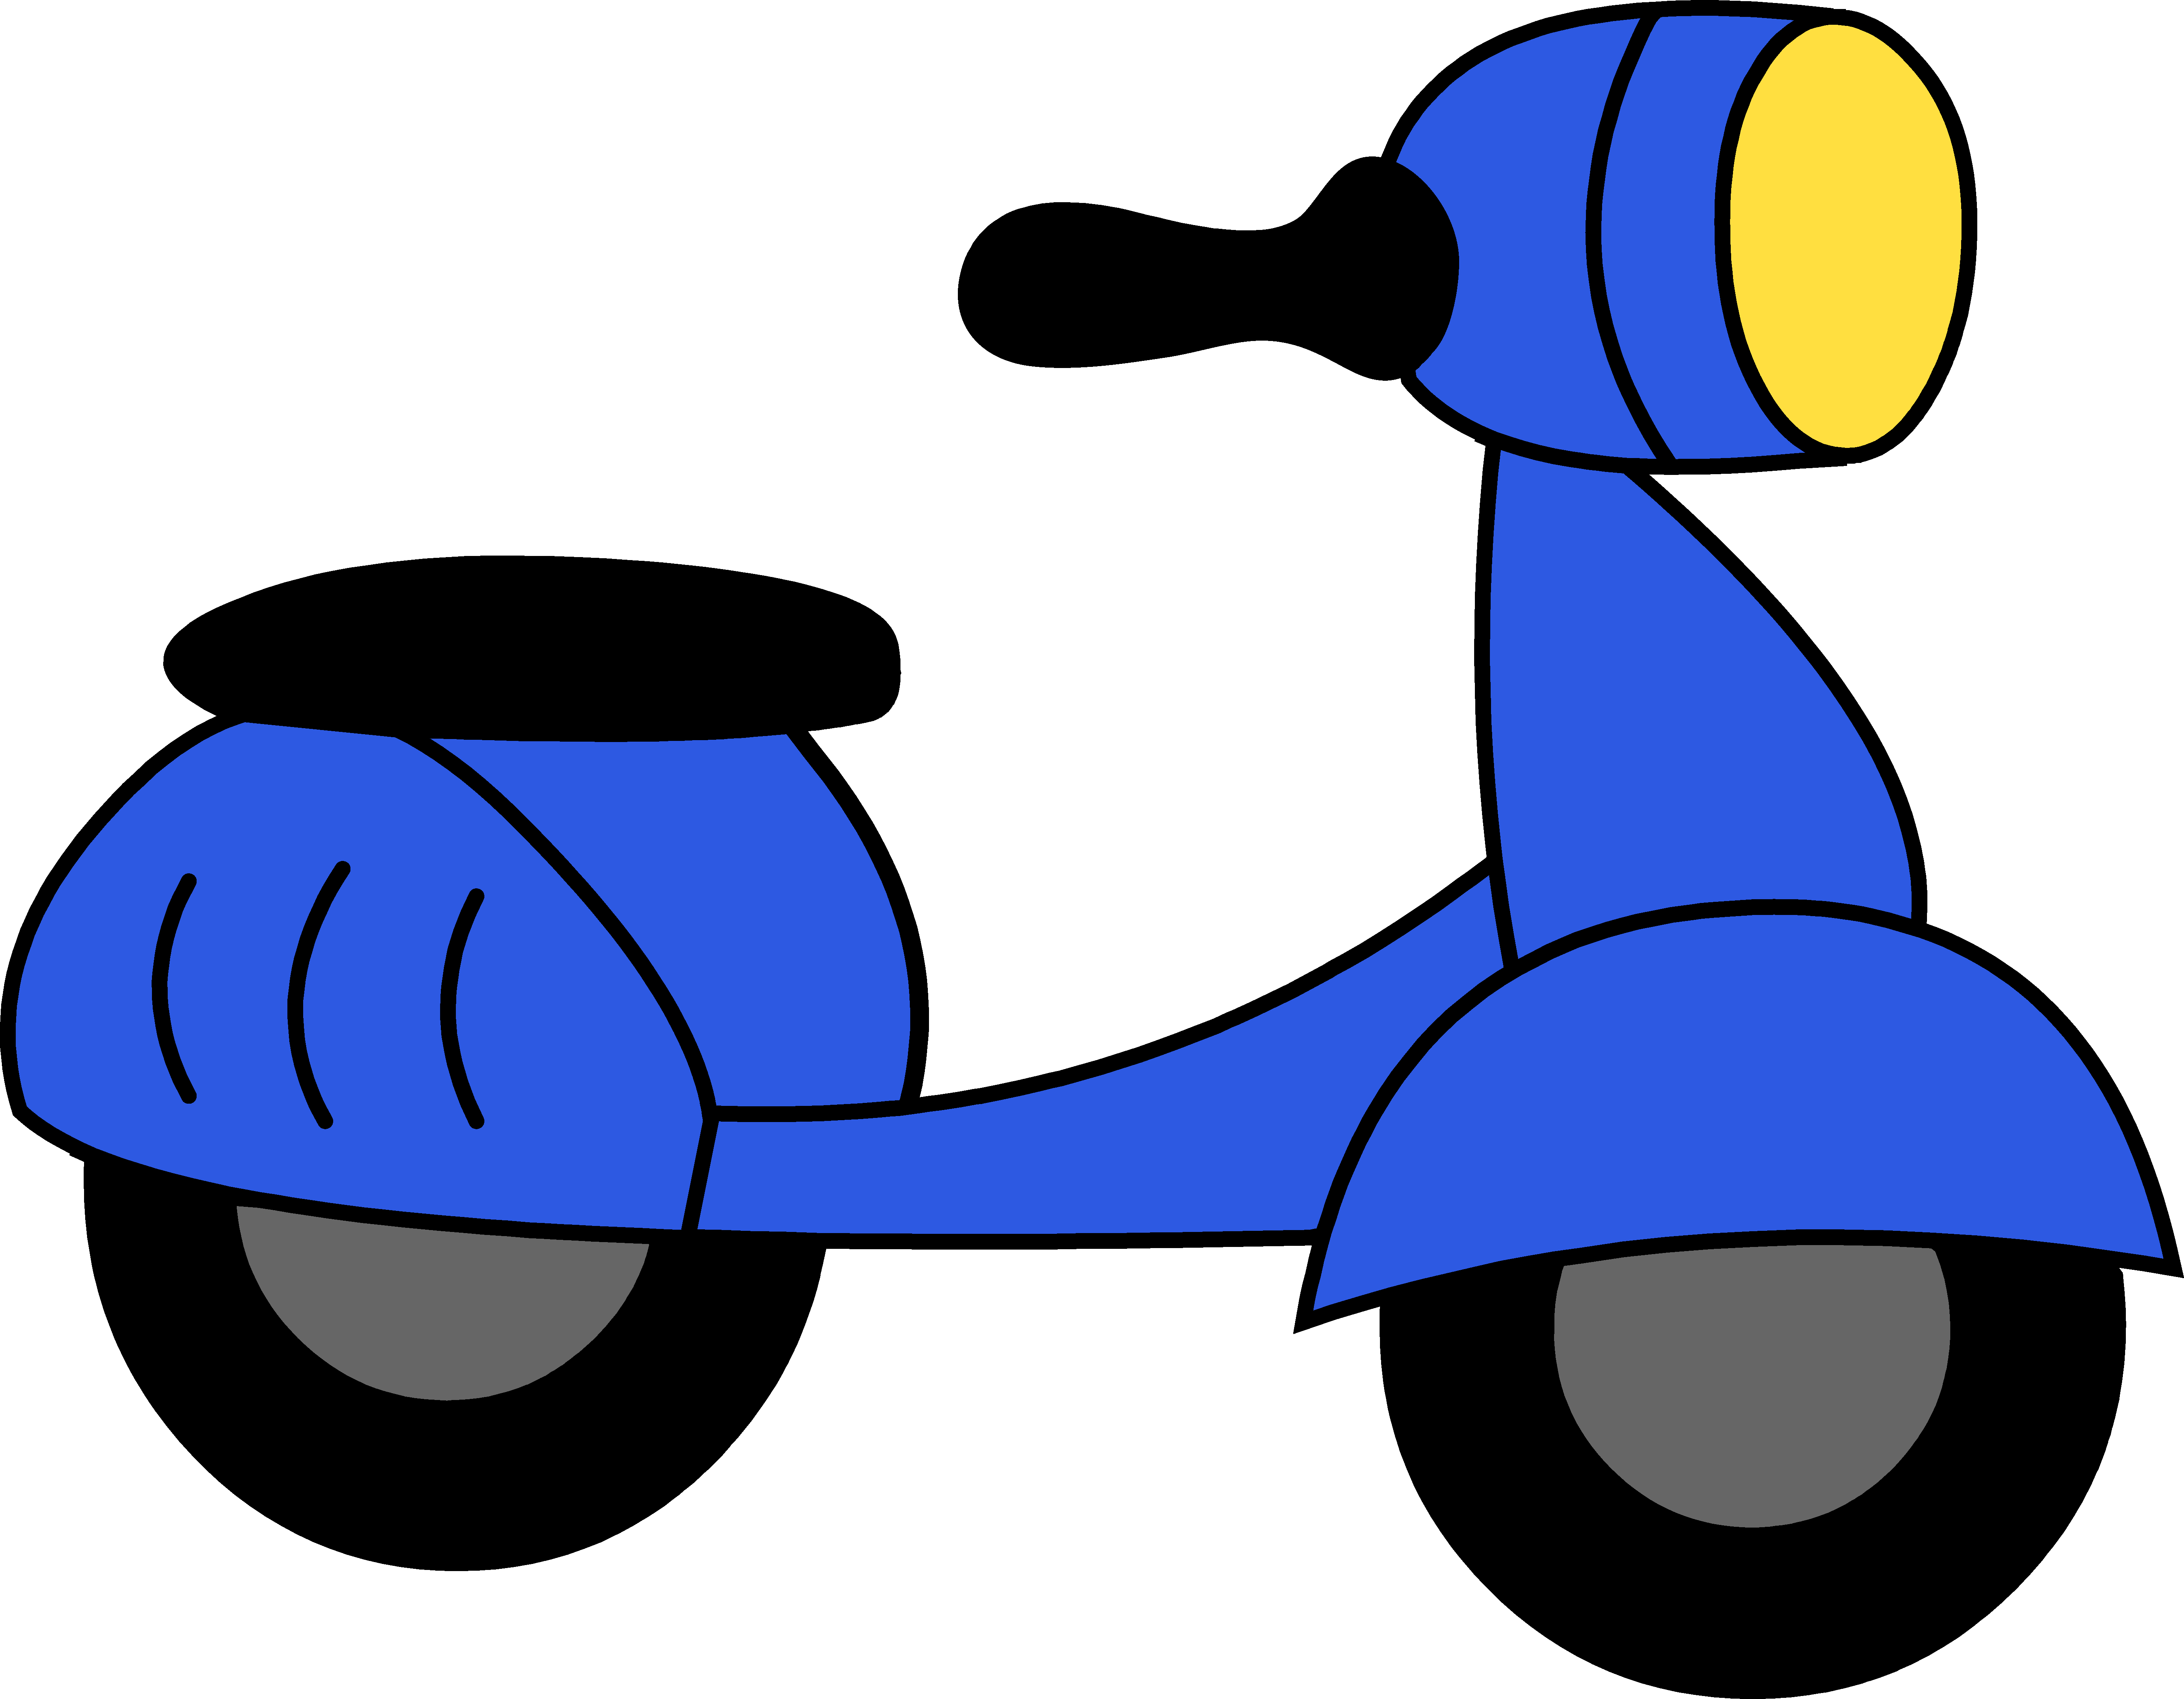 Motor scooter clipart picture royalty free Free Vespa Cliparts, Download Free Clip Art, Free Clip Art on ... picture royalty free